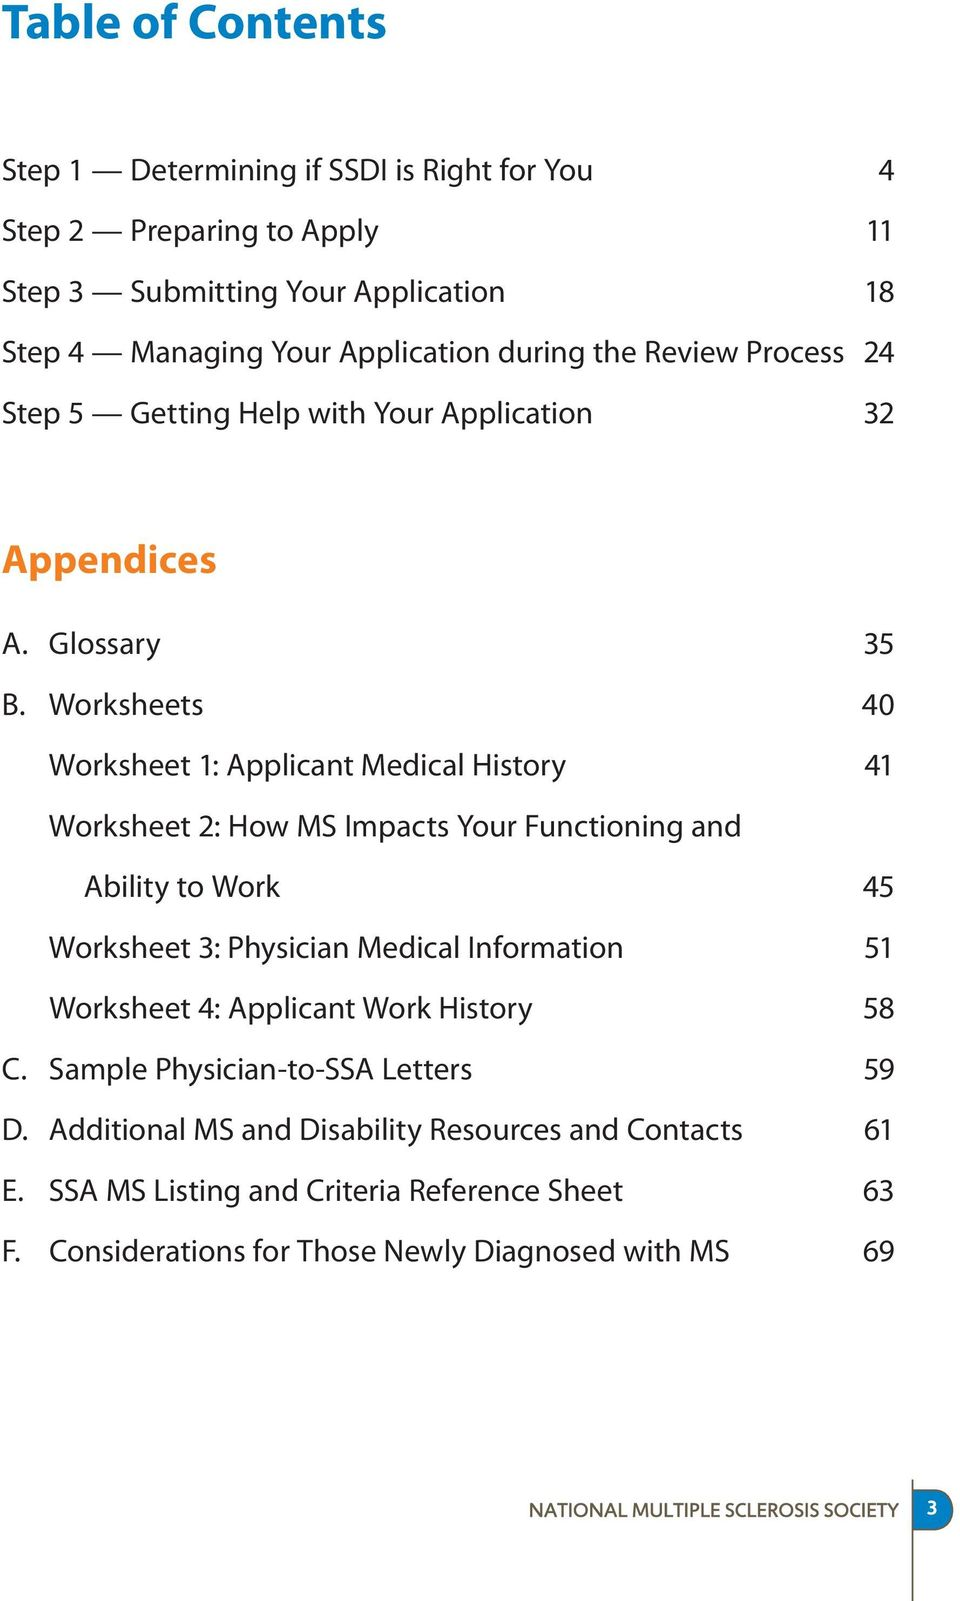 Worksheets 40 Worksheet 1: Applicant Medical History 41 Worksheet 2: How MS Impacts Your Functioning and Ability to Work 45 Worksheet 3: Physician Medical Information 51